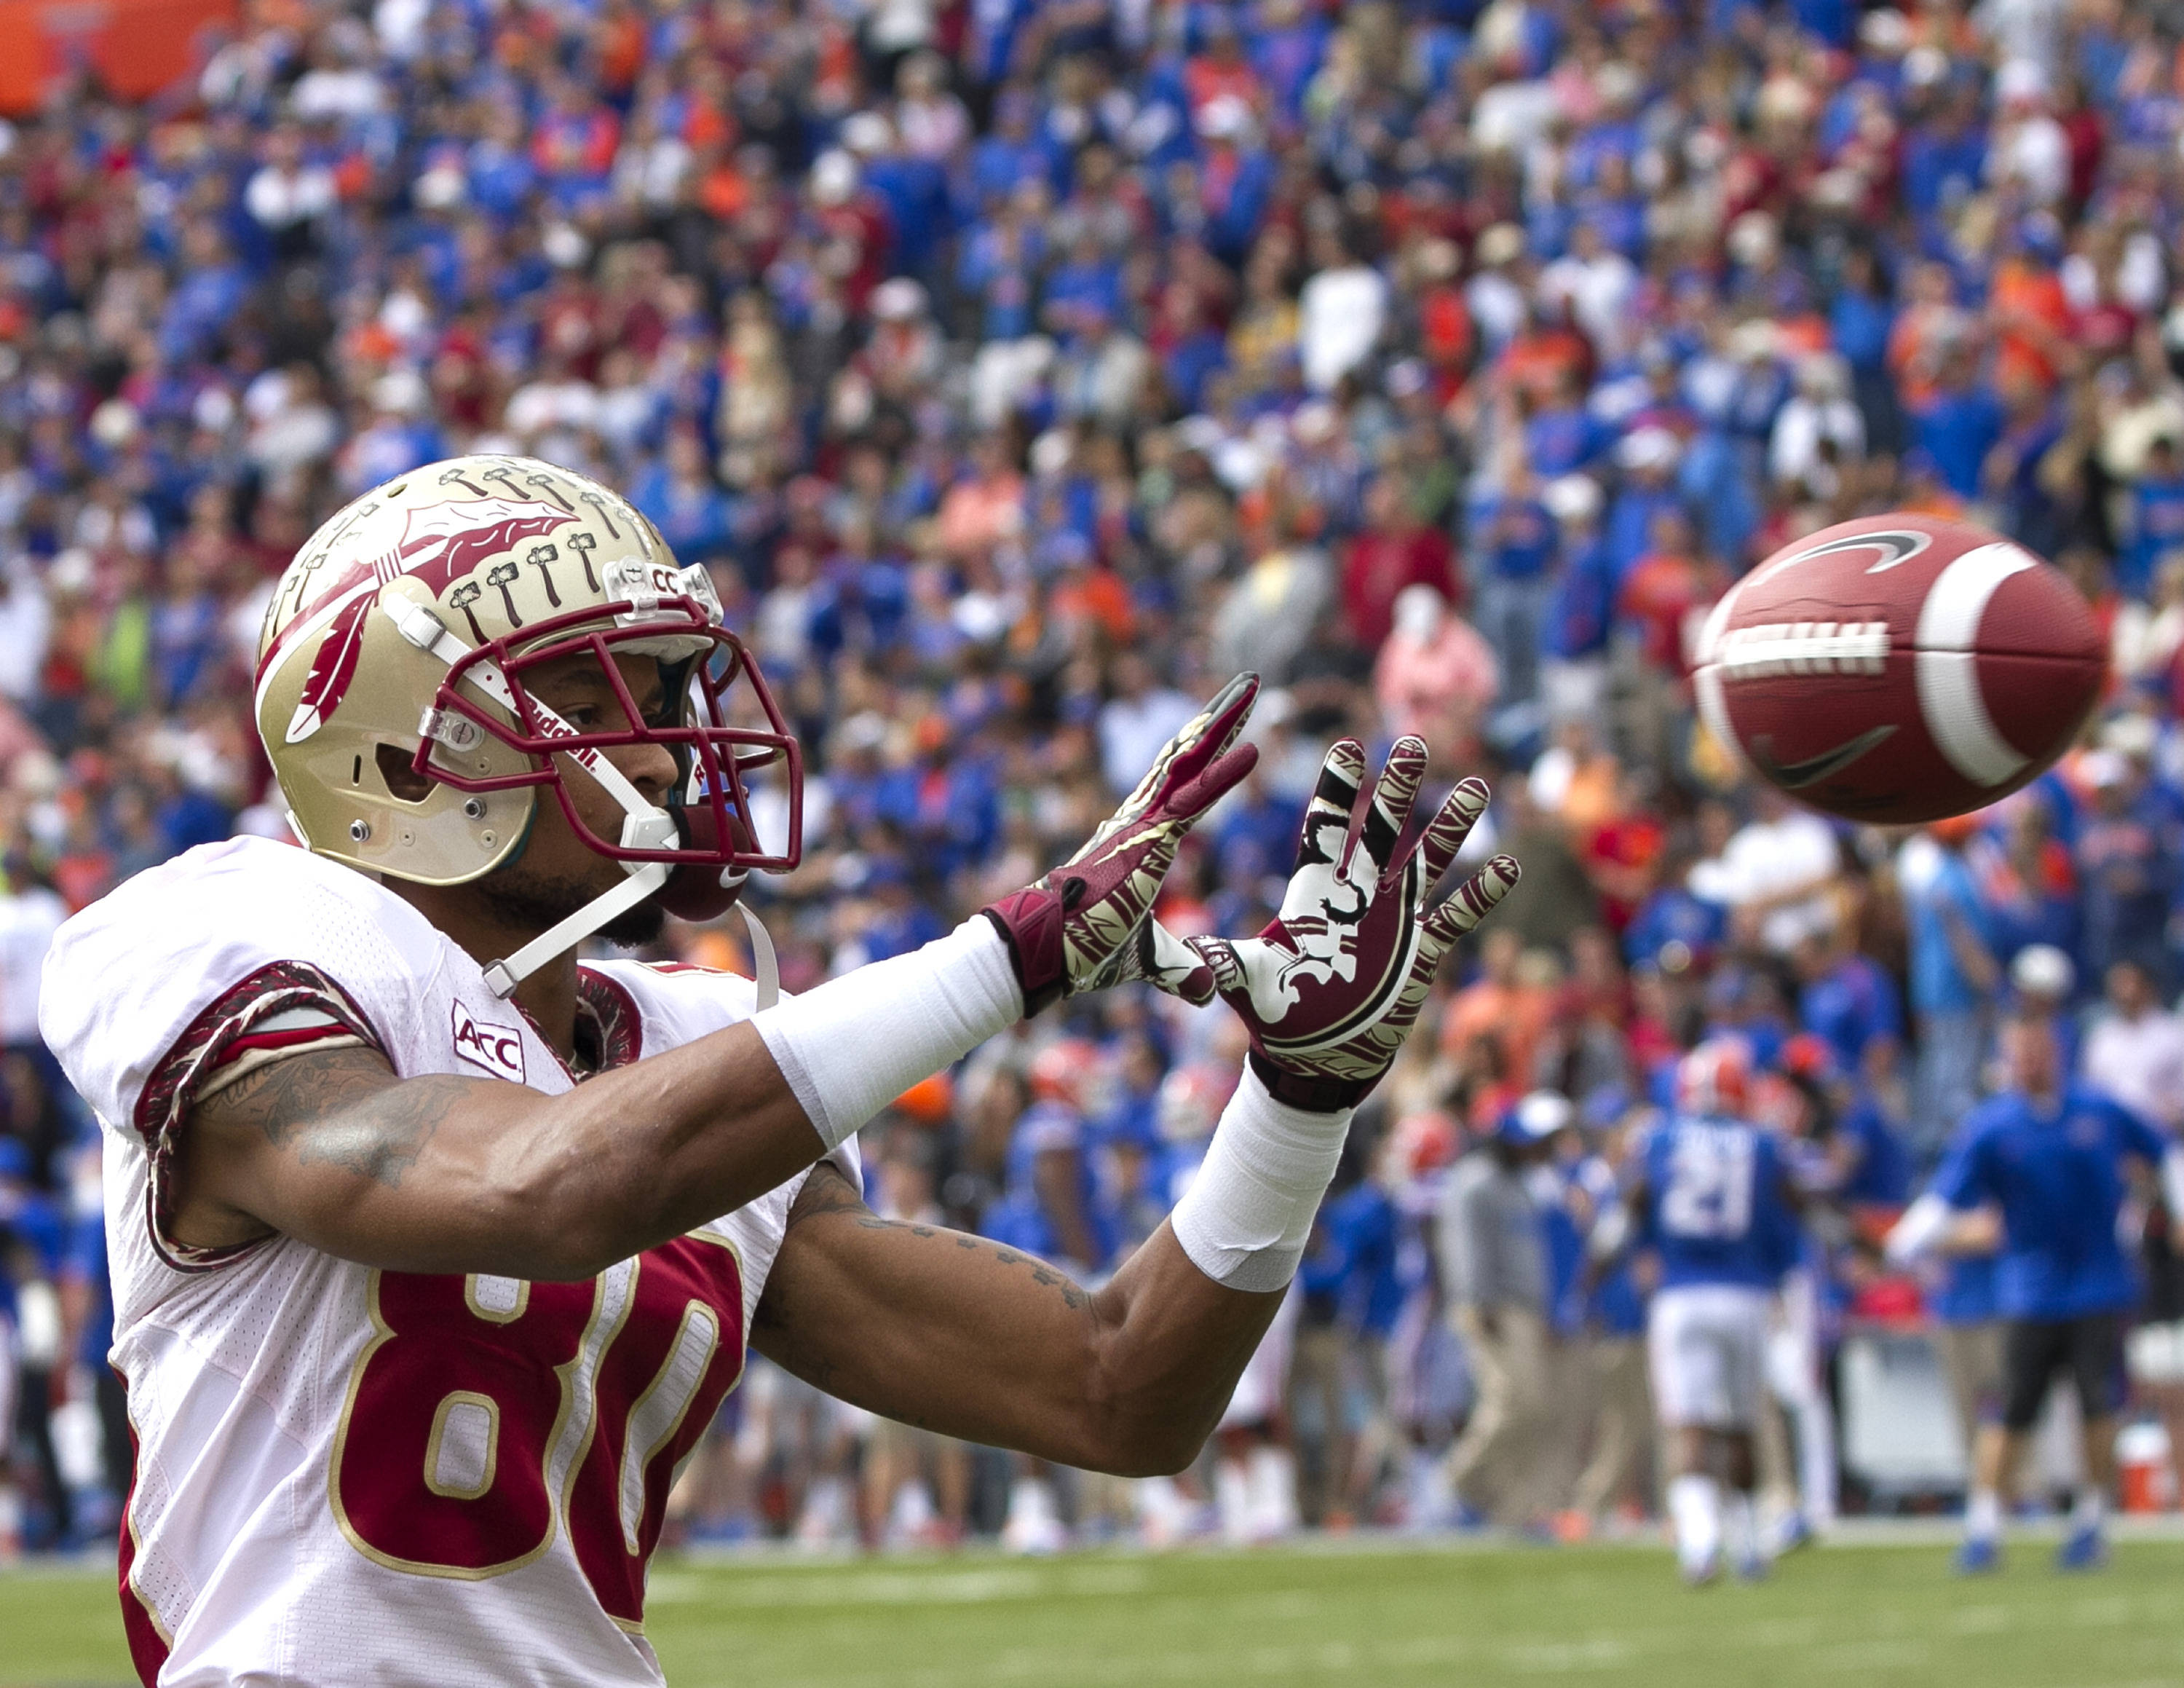 Rashad Greene (80) warming up, FSU vs Florida, 11-30-13,  (Photo by Steve Musco)